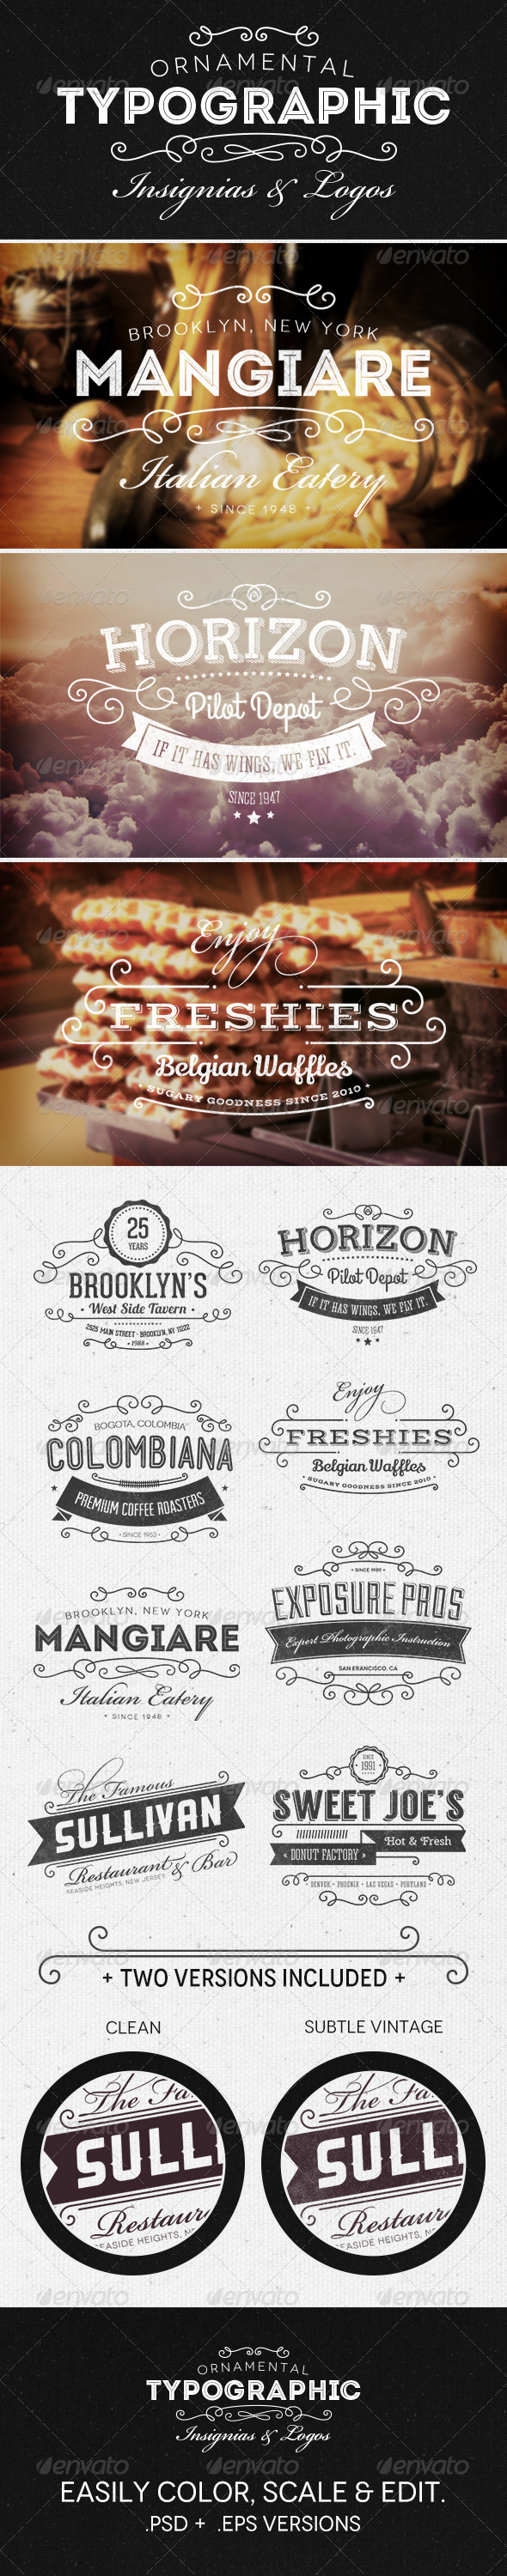 GraphicRiver Ornamental Typographic Insignias Logos 5196842